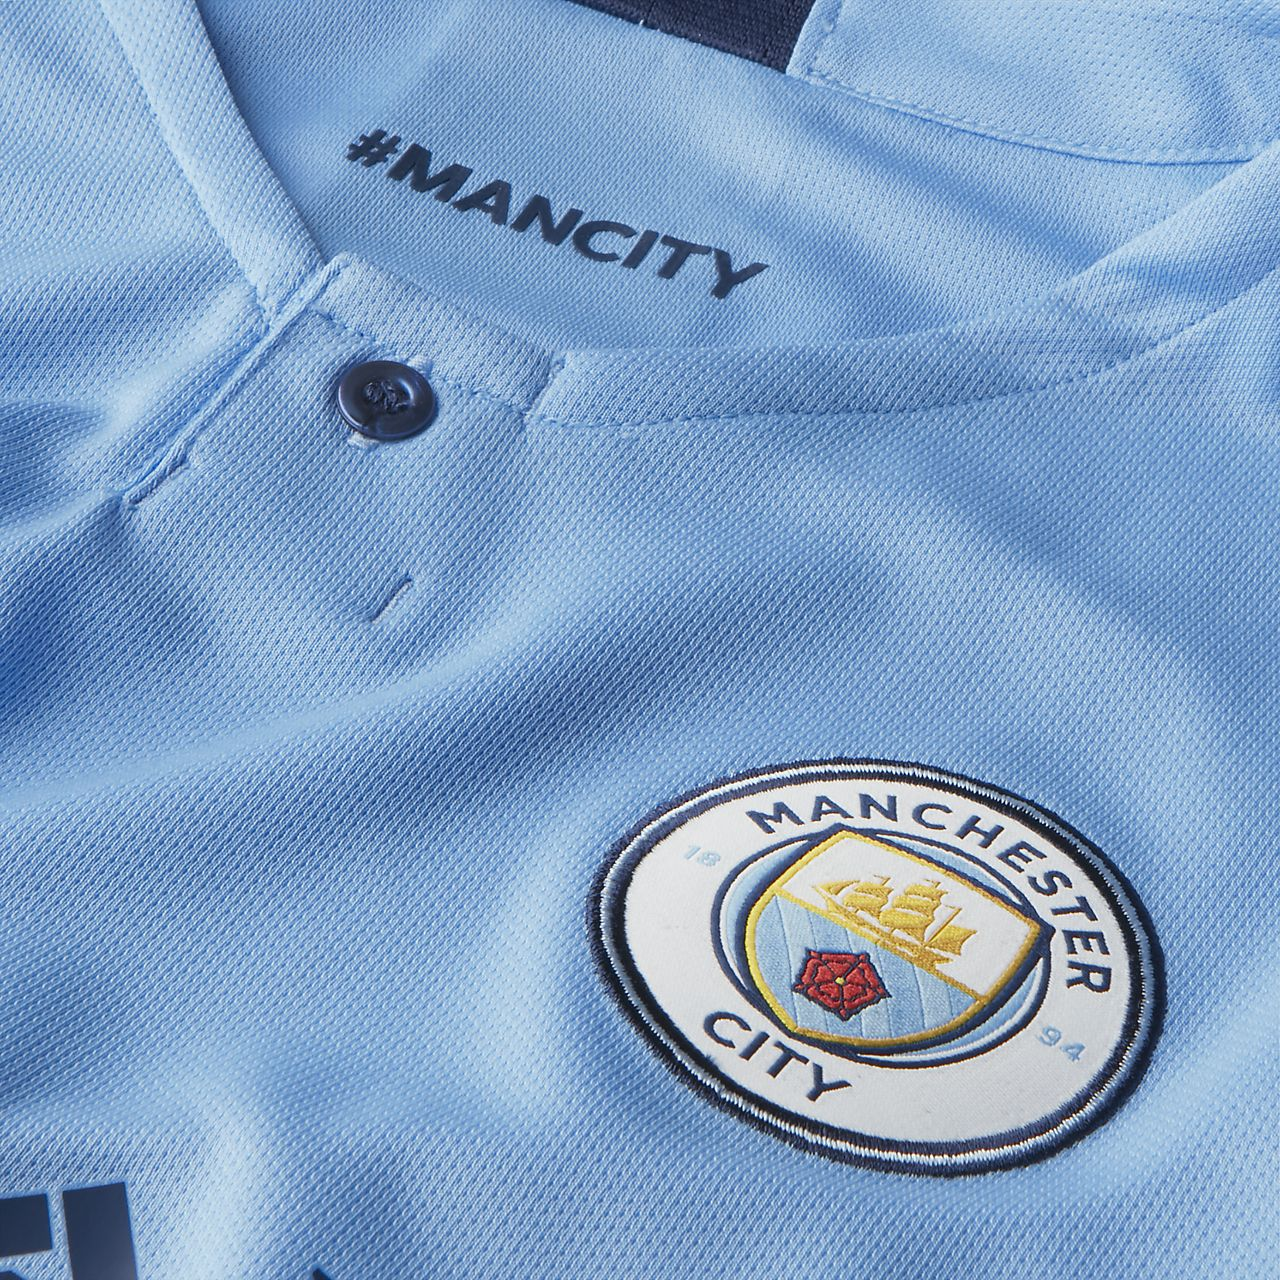 d1f2d3367 ... 2018 19 Manchester City FC Stadium Home Men s Long-Sleeve Football Shirt